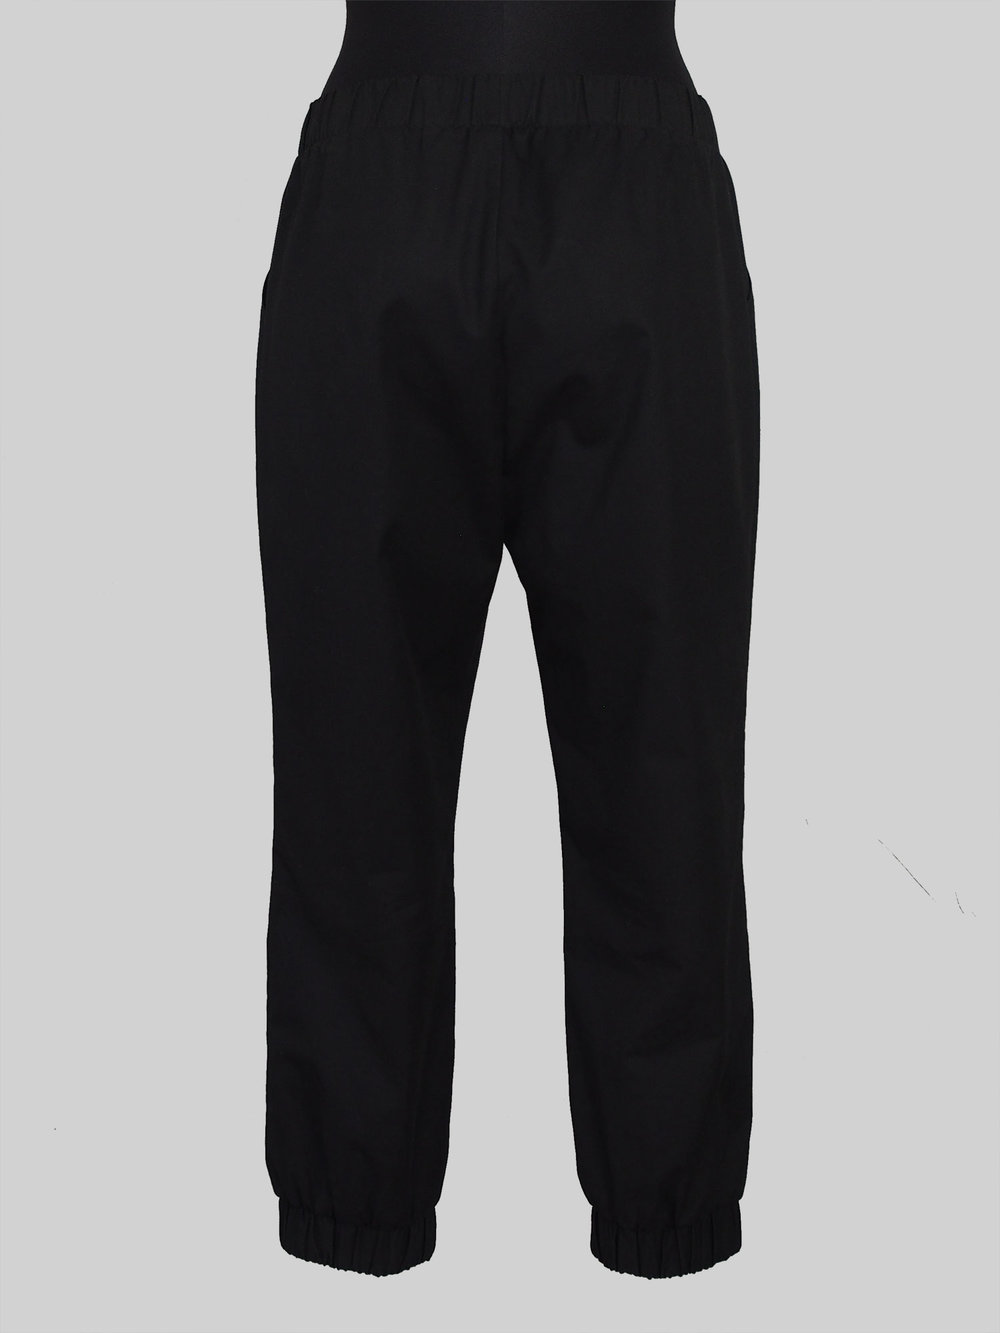 Almost Long Trousers The Assembly Line Designbeispiel Rueckansicht Puppe Stofftraeume4you